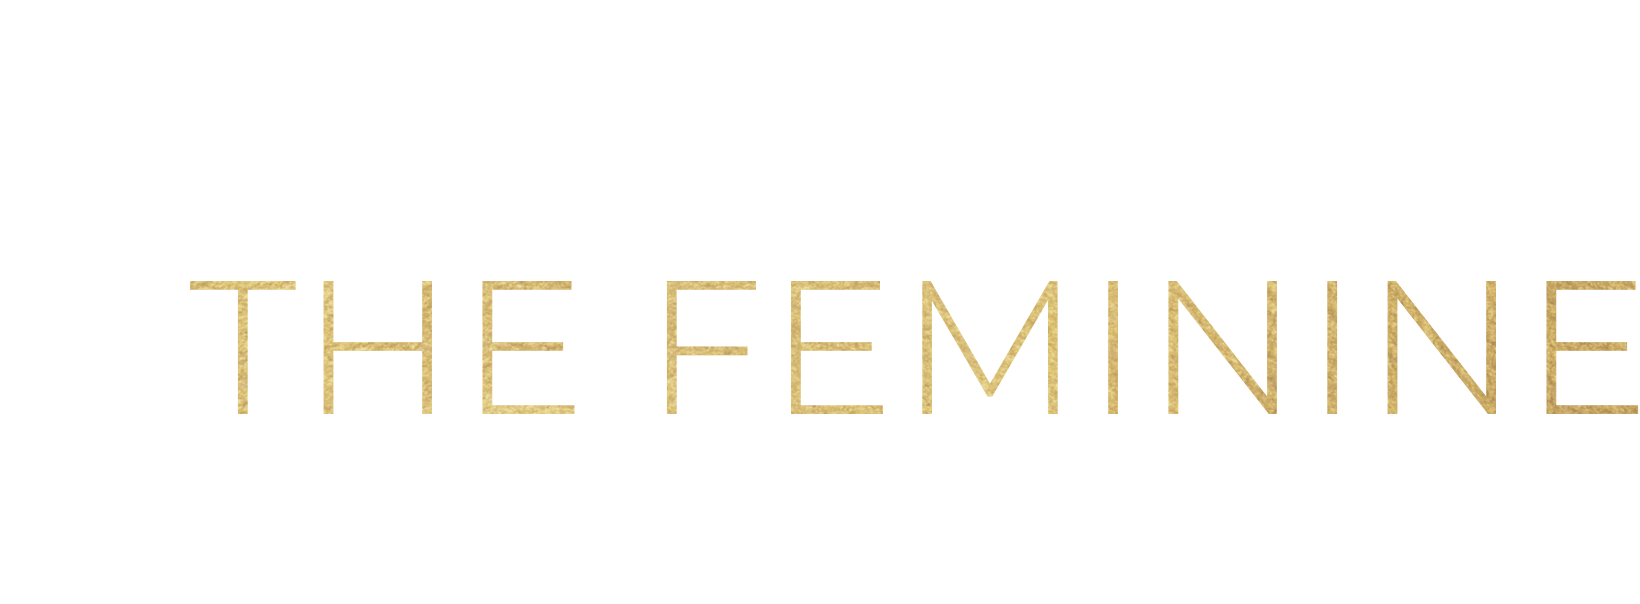 Empowering the Feminine in Soul, Sex, and Leadership